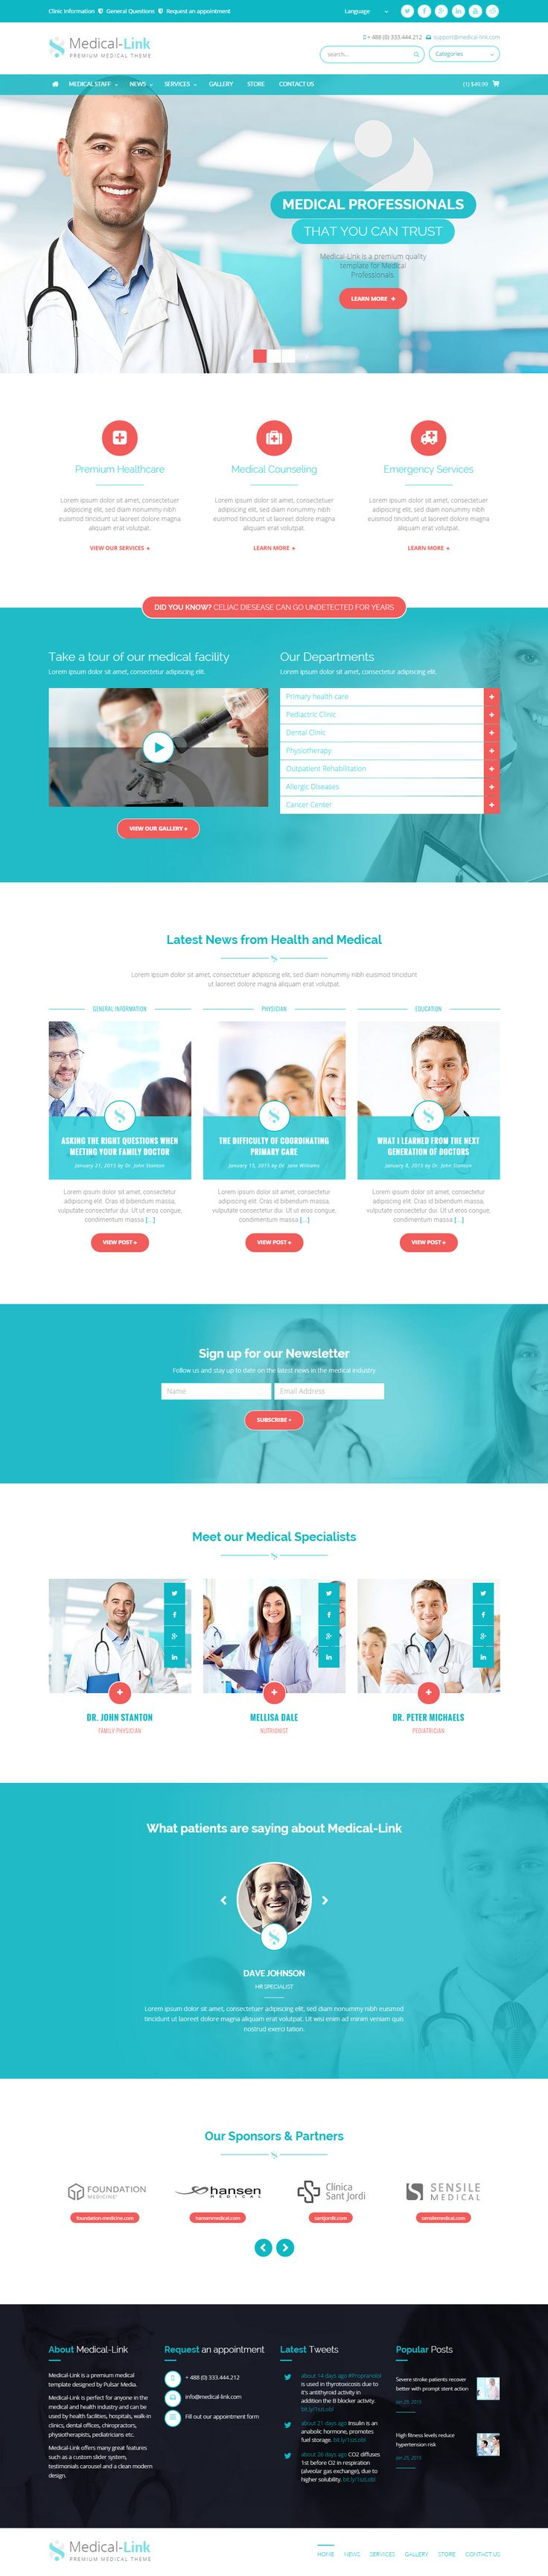 Medical-Link is Premium full Responsive Medical HTML5 Template. Bootstrap Framework. Retina Ready. Parallax Scrolling. http://www.responsivemiracle.com/cms/medical-link-premium-responsive-medical-html5-template/